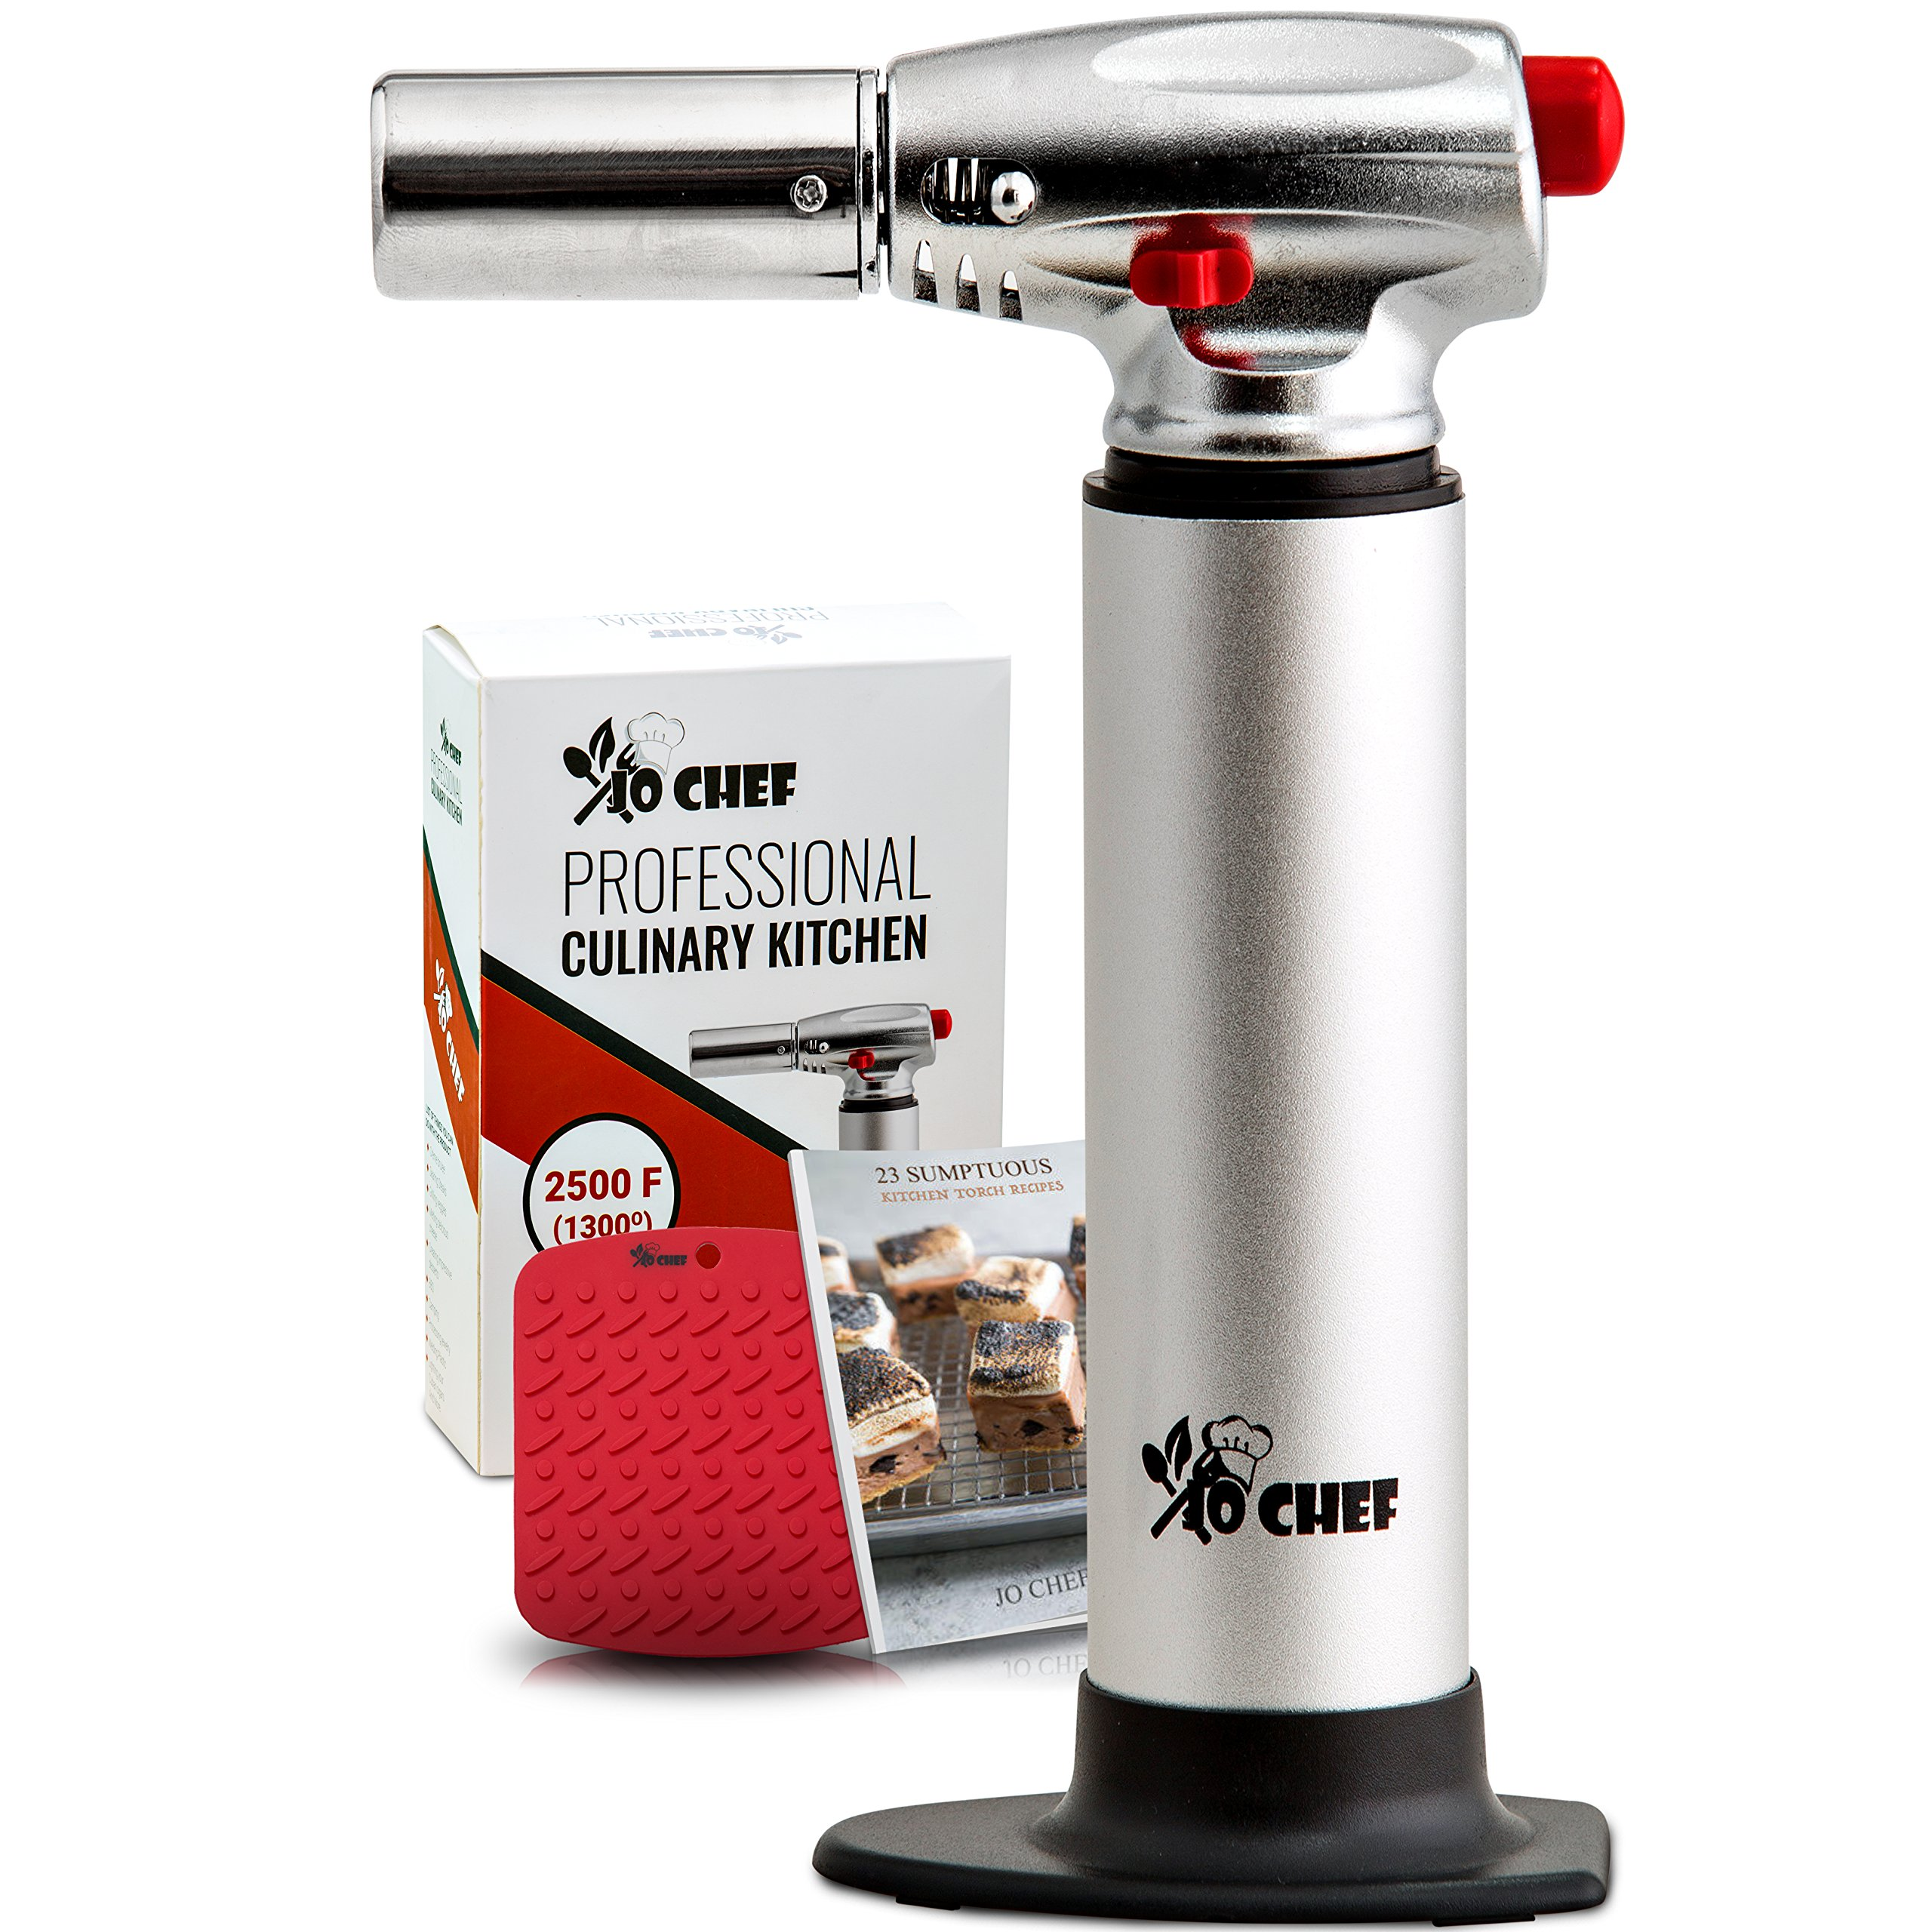 Jo Chef Professional Culinary Torch - Aluminum Refillable Crème Brulee Blow Torch - With Adjustable Flame - Perfect for Cooking, Baking, Crafts, BBQs - FREE Heat Resistant Place Mat + Recipe eBook